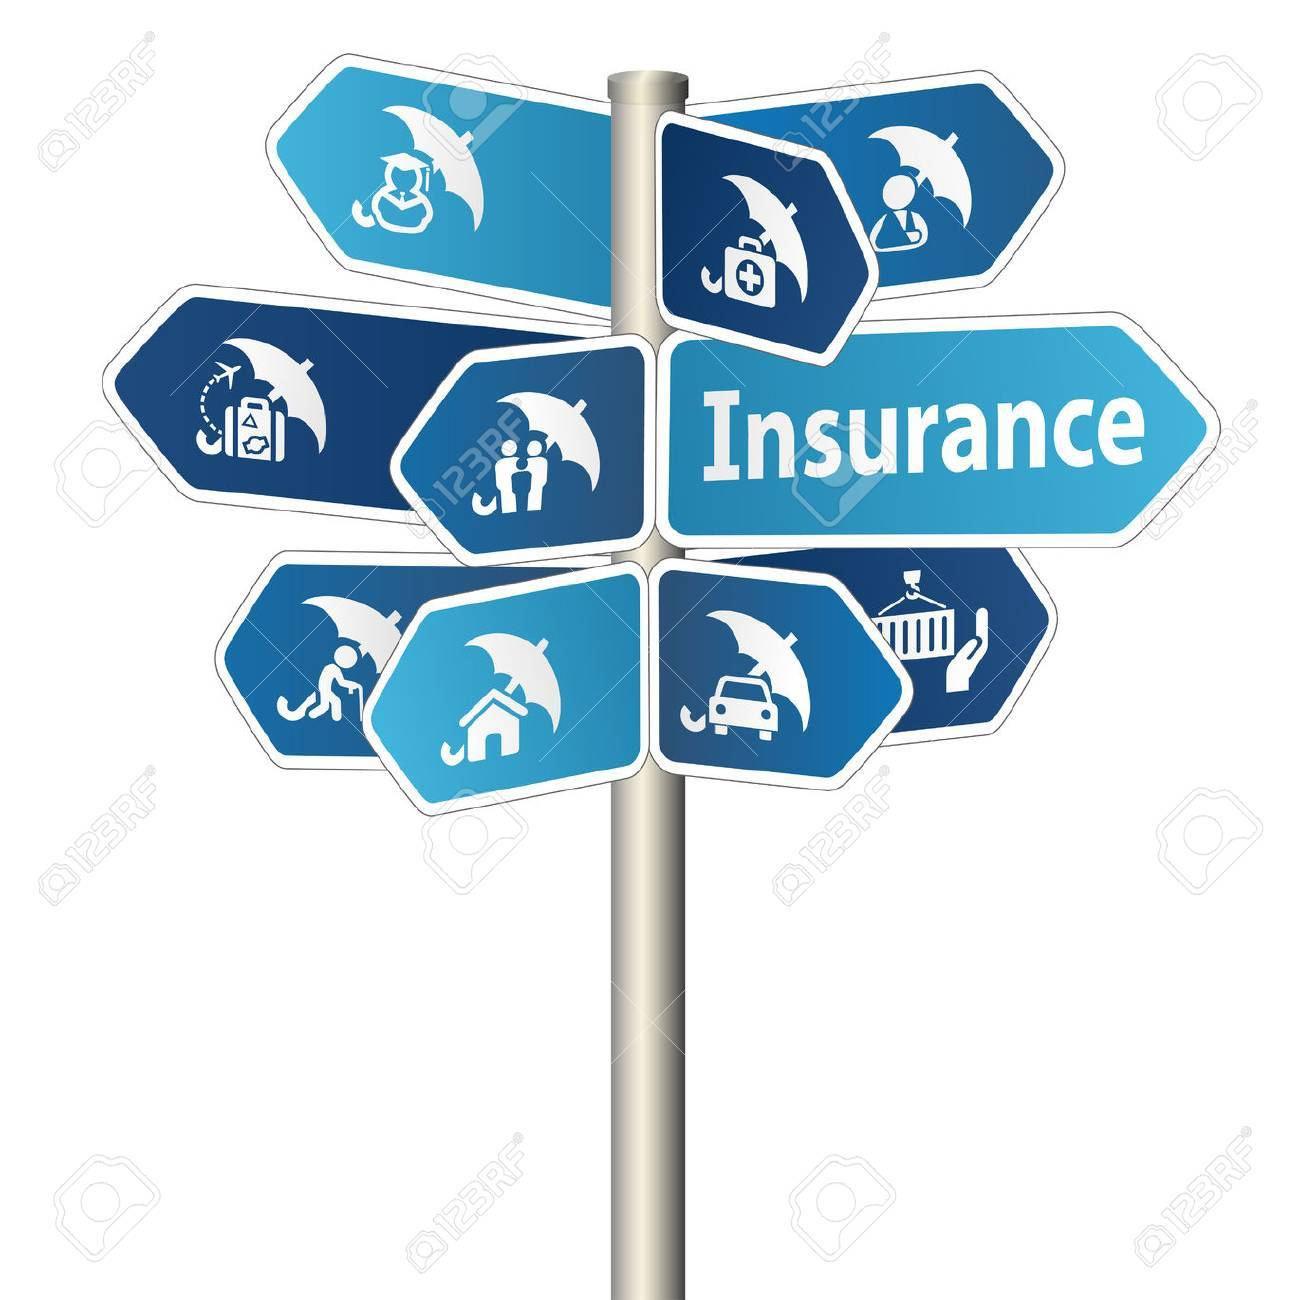 Insurance Sign Stock Photo - 41299320